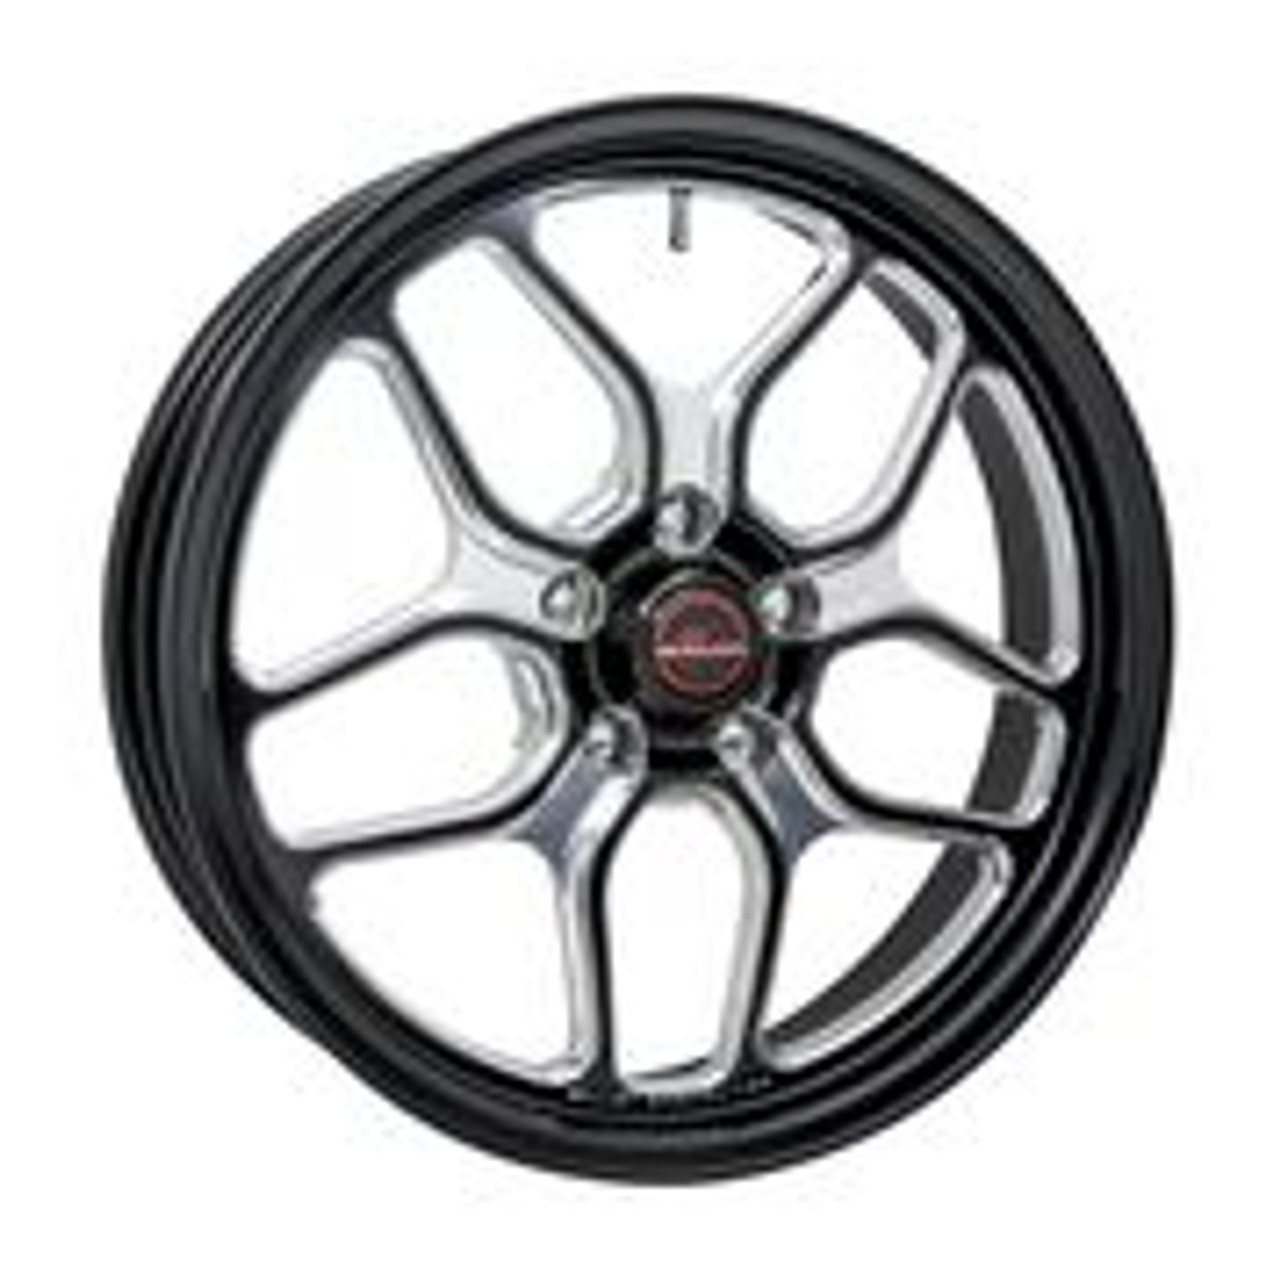 Win Lite 15X10/18x5 Drag Pack Front and Rear Set